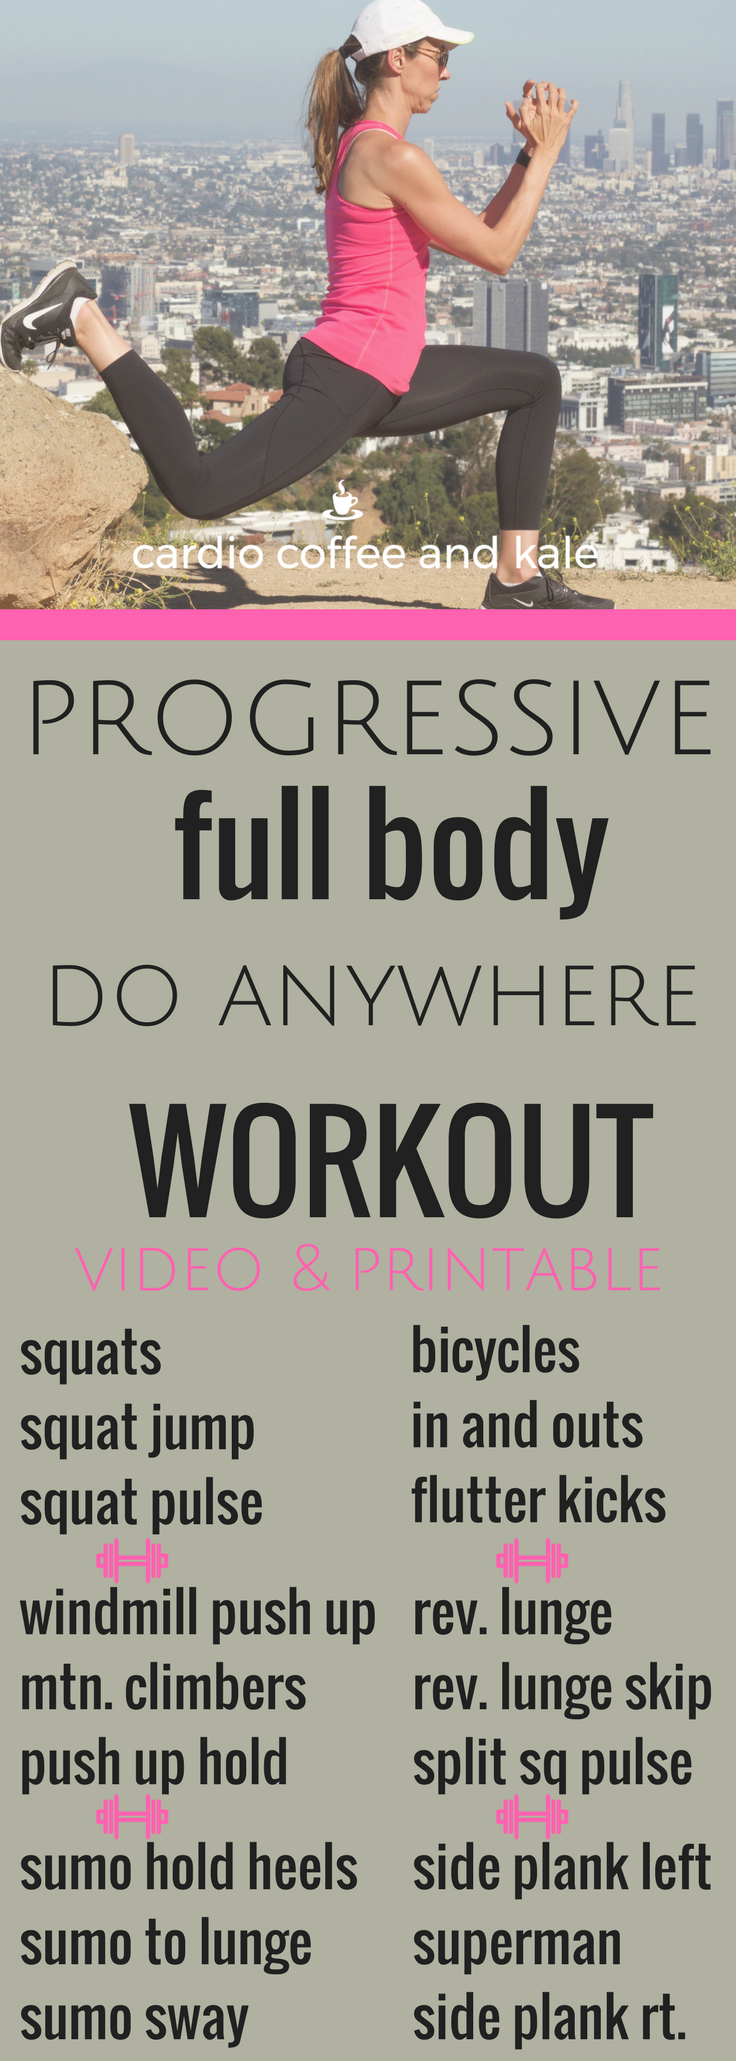 do anywhere progressive full body workout. www.cardiocoffeeandkale.com